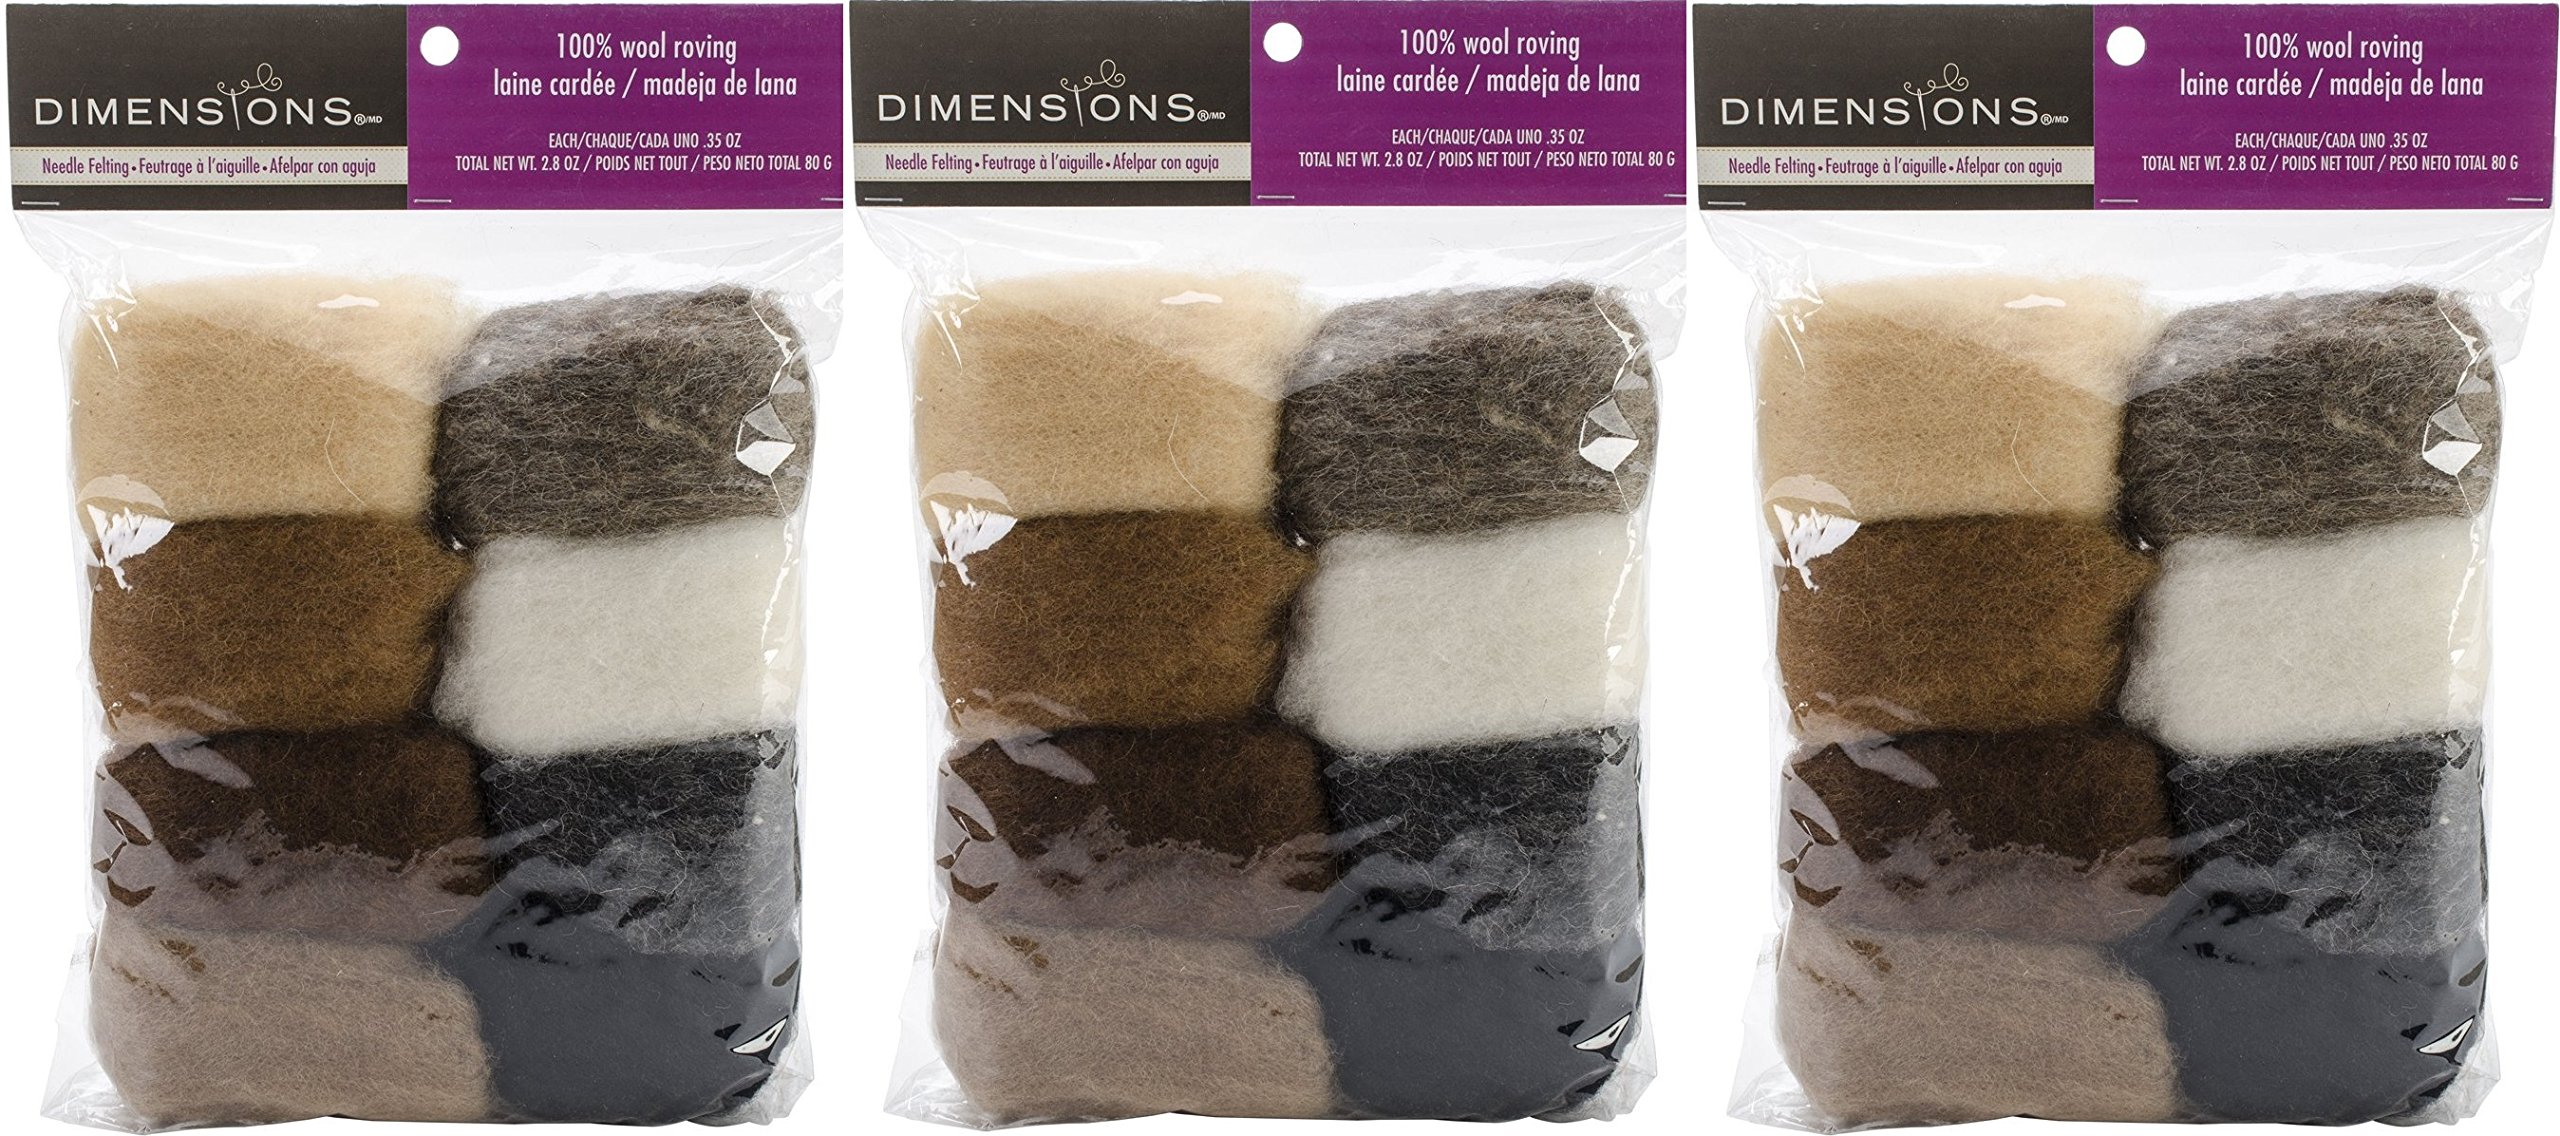 Dimensions Crafts 72-74004 Earth Tone Wool Roving for Needle Felting, 8-Pack (3 Pack)